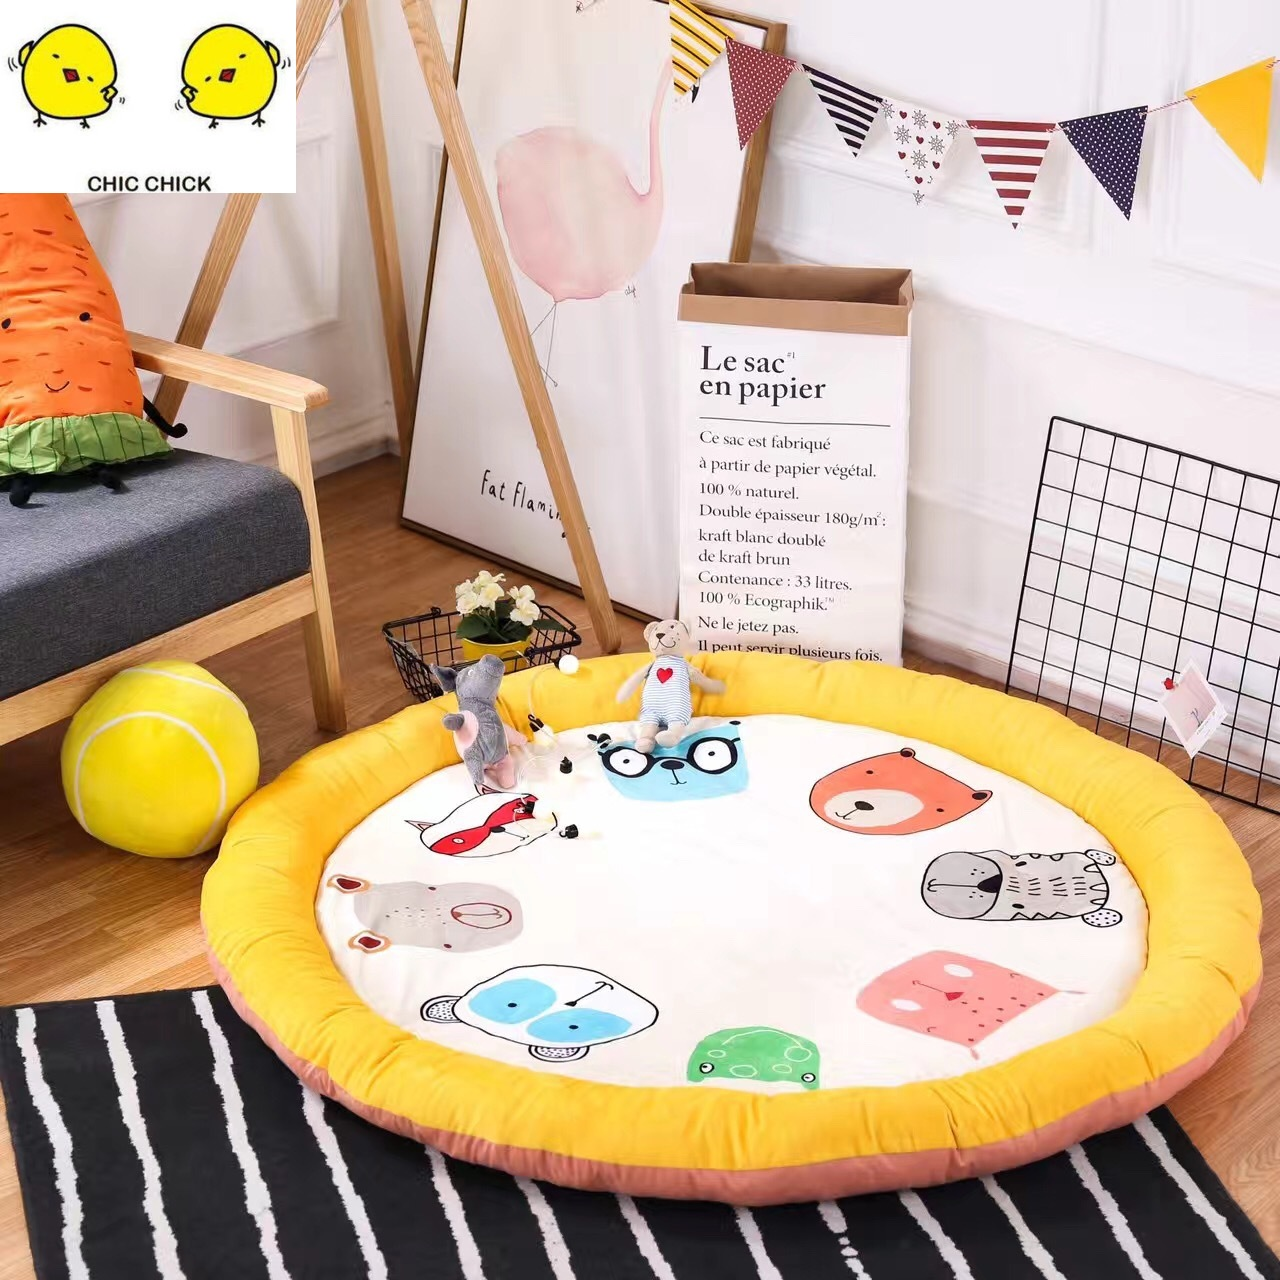 Play Mat Cartoon Animal Baby Mat Newborn Infant Crawling Blanket Cotton Round Floor Carpet Rugs Mat for Kids Room Nursery Decor форма для нарезки арбуза